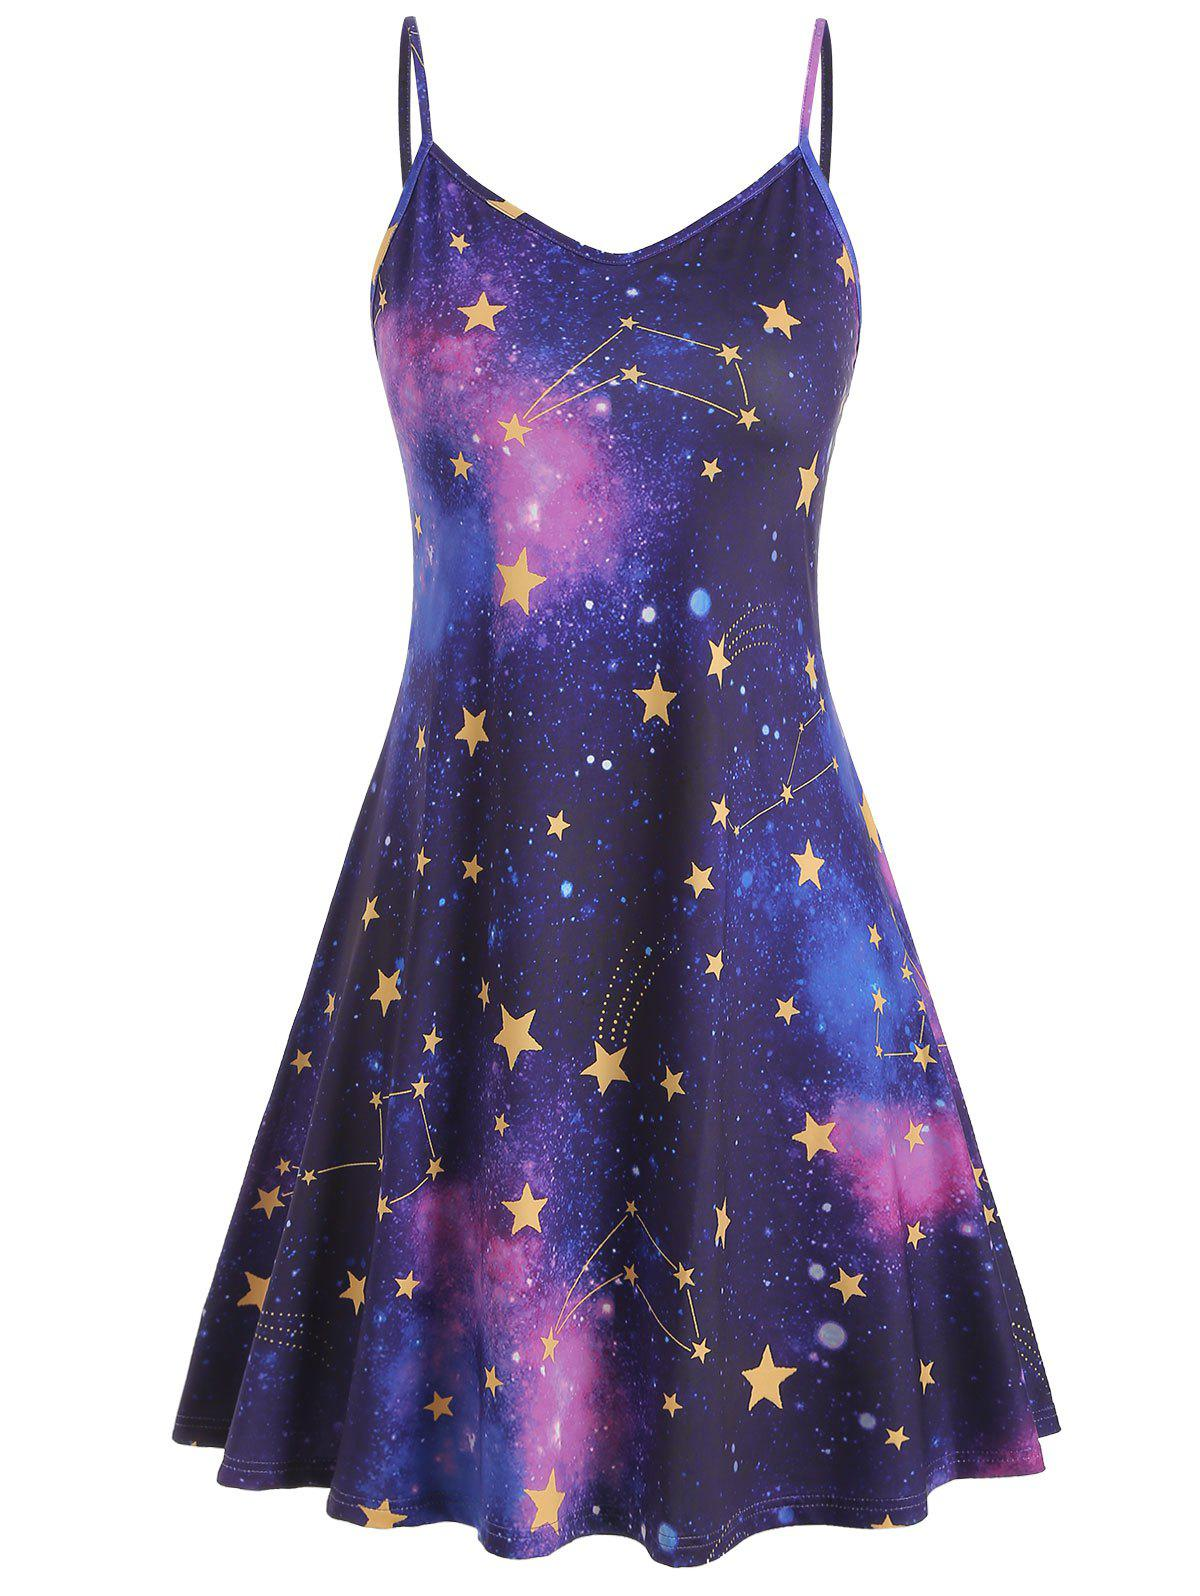 Galaxy Print Plus Size Trapeze Dress - PURPLE IRIS 5X